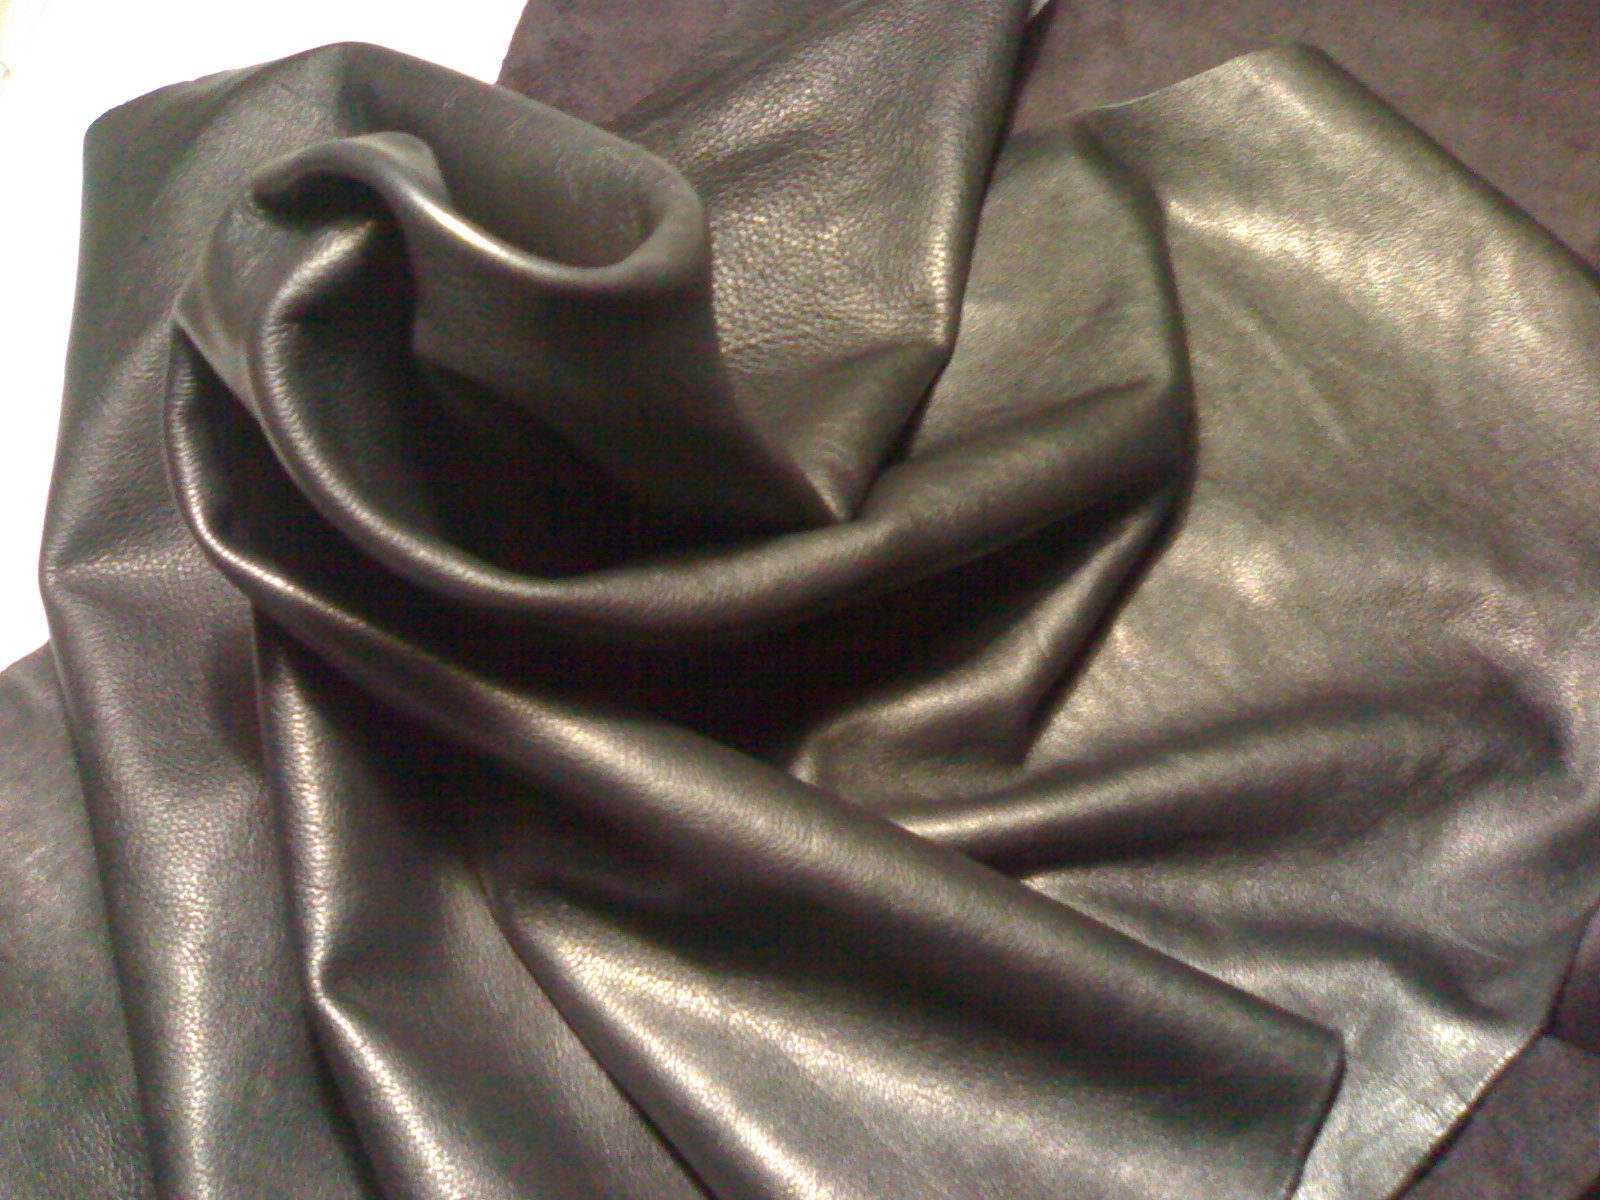 VESTED LEATHERS LTD.  - BulgarianTextile.com